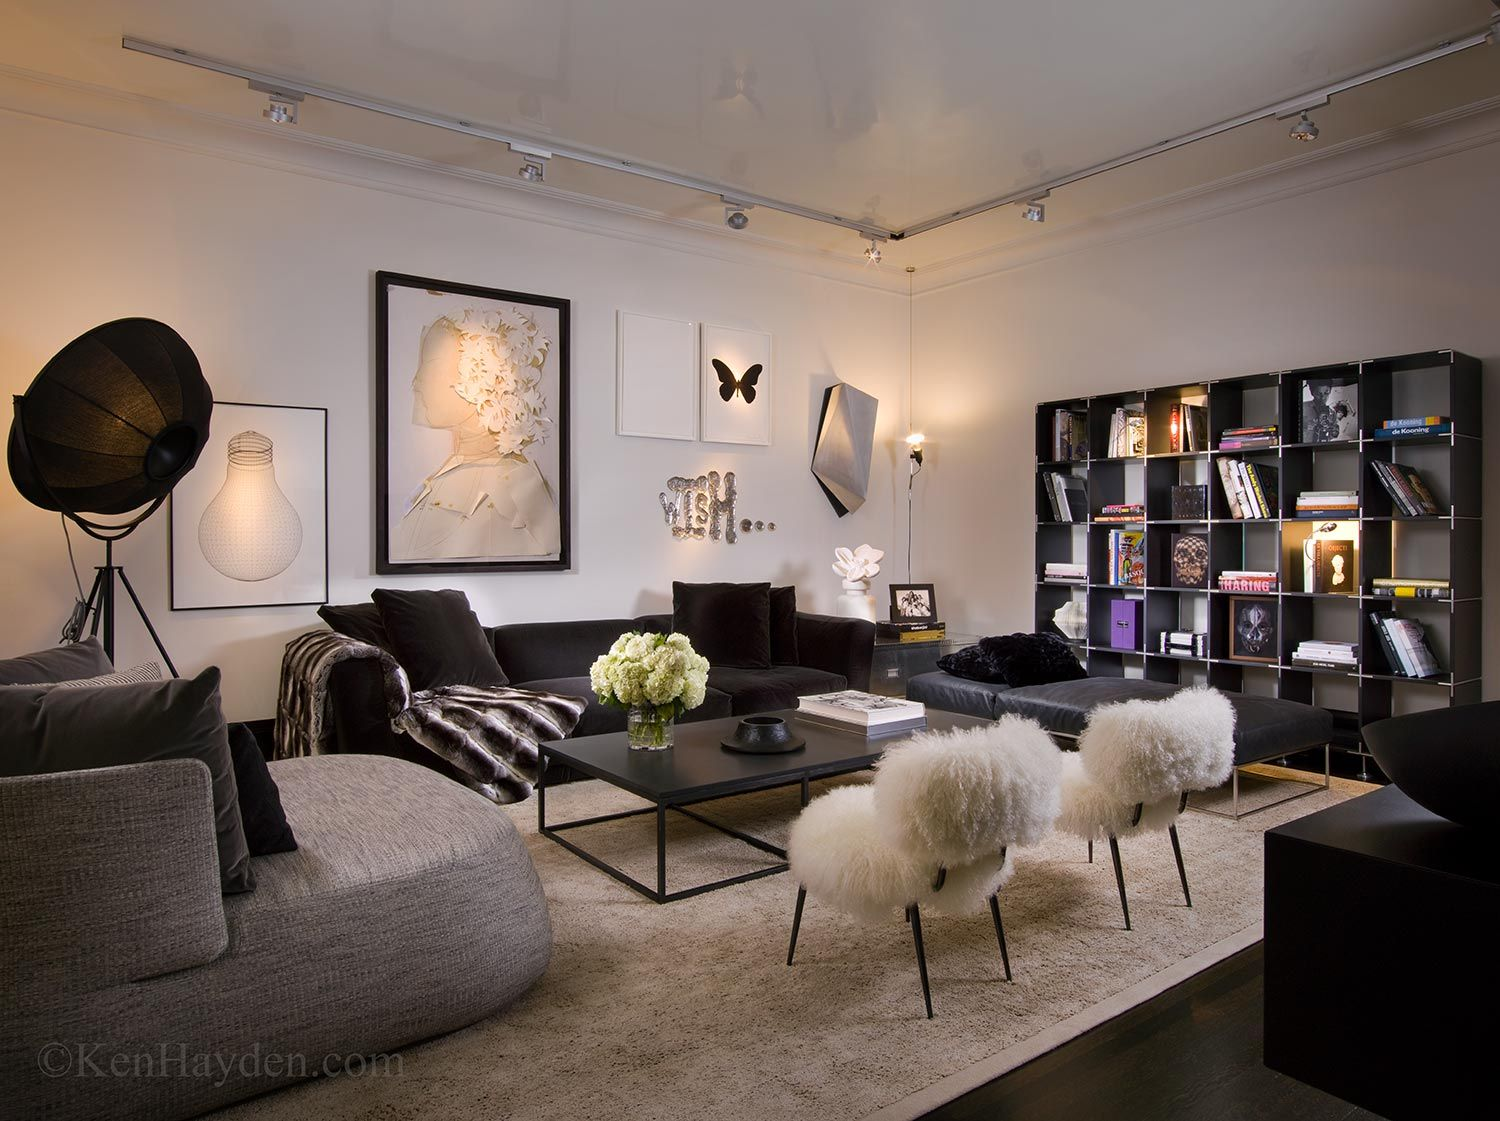 Ken Hayden photographed this sultry New York City living room